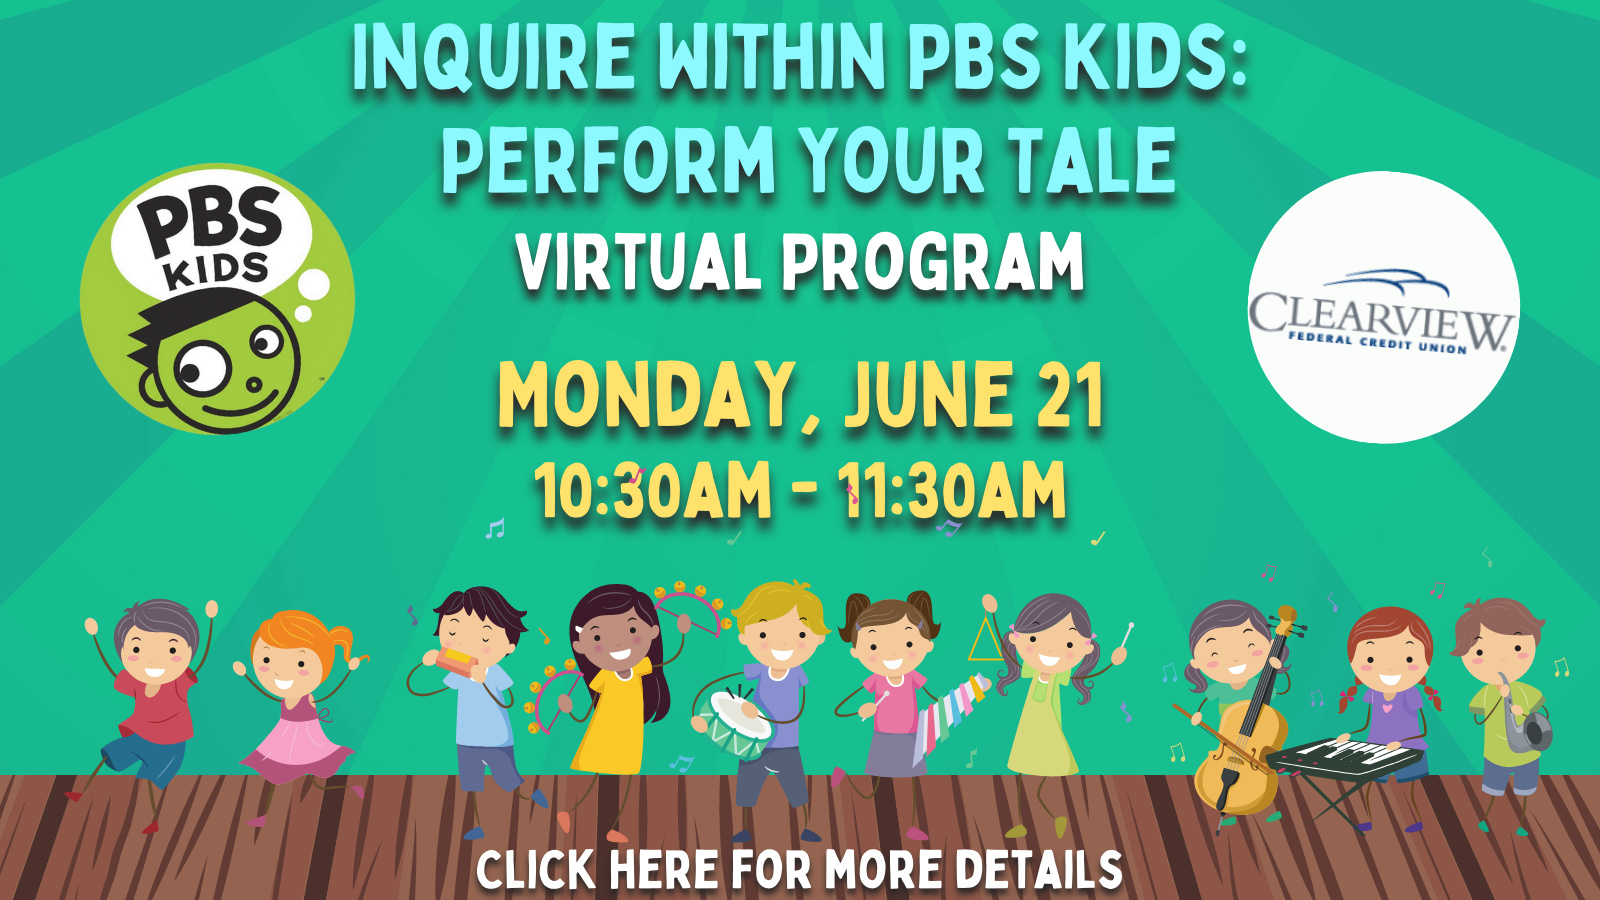 Inquire Within PBS Kids Perform Your Tale